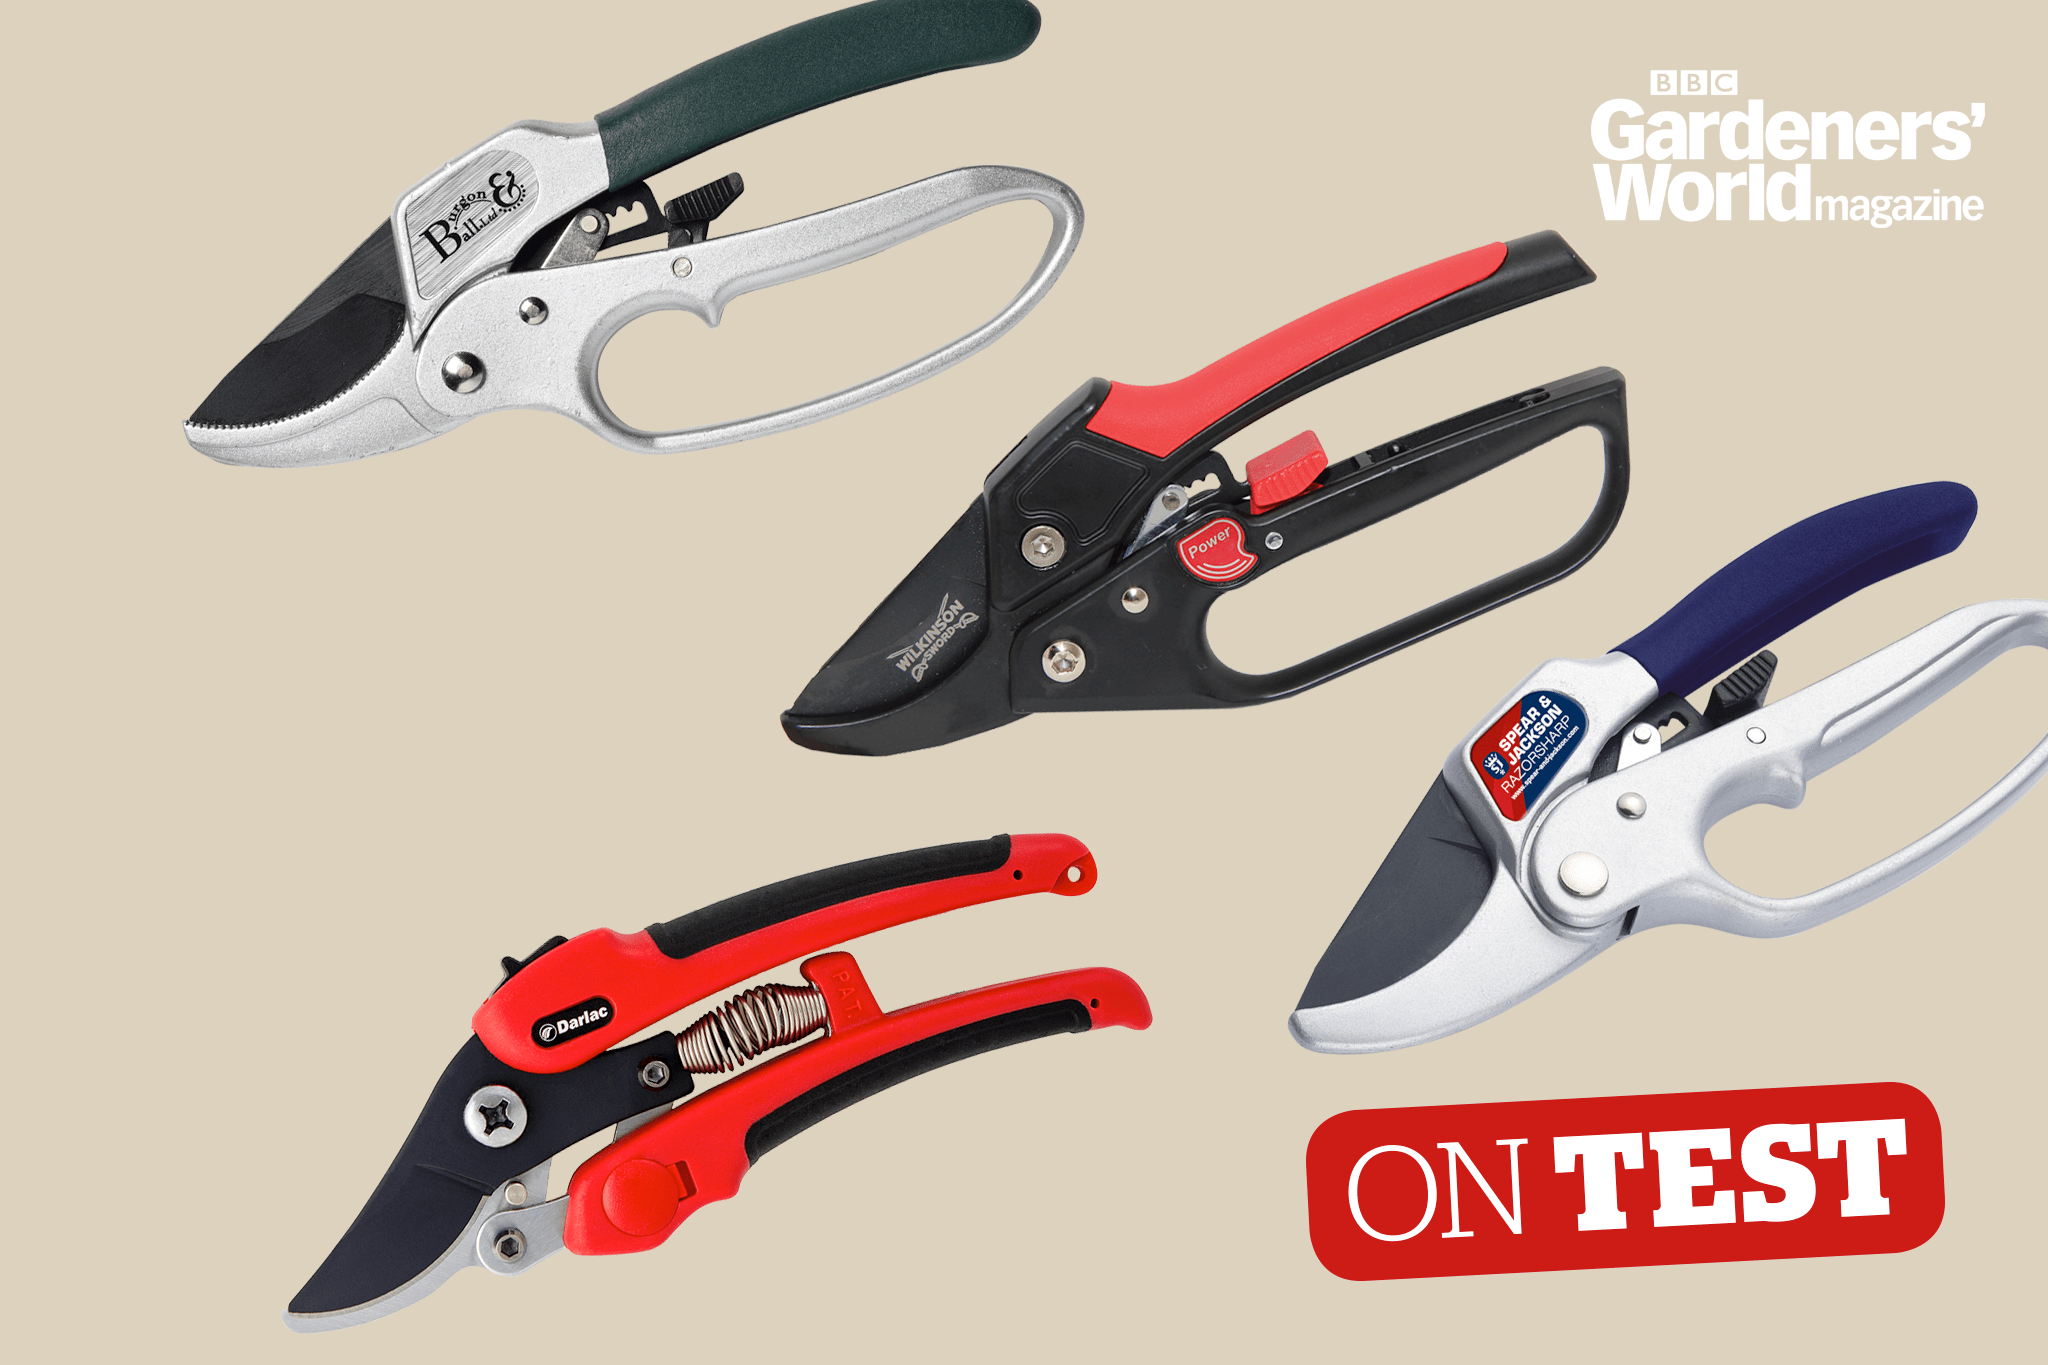 On Test - Ratchet secateurs